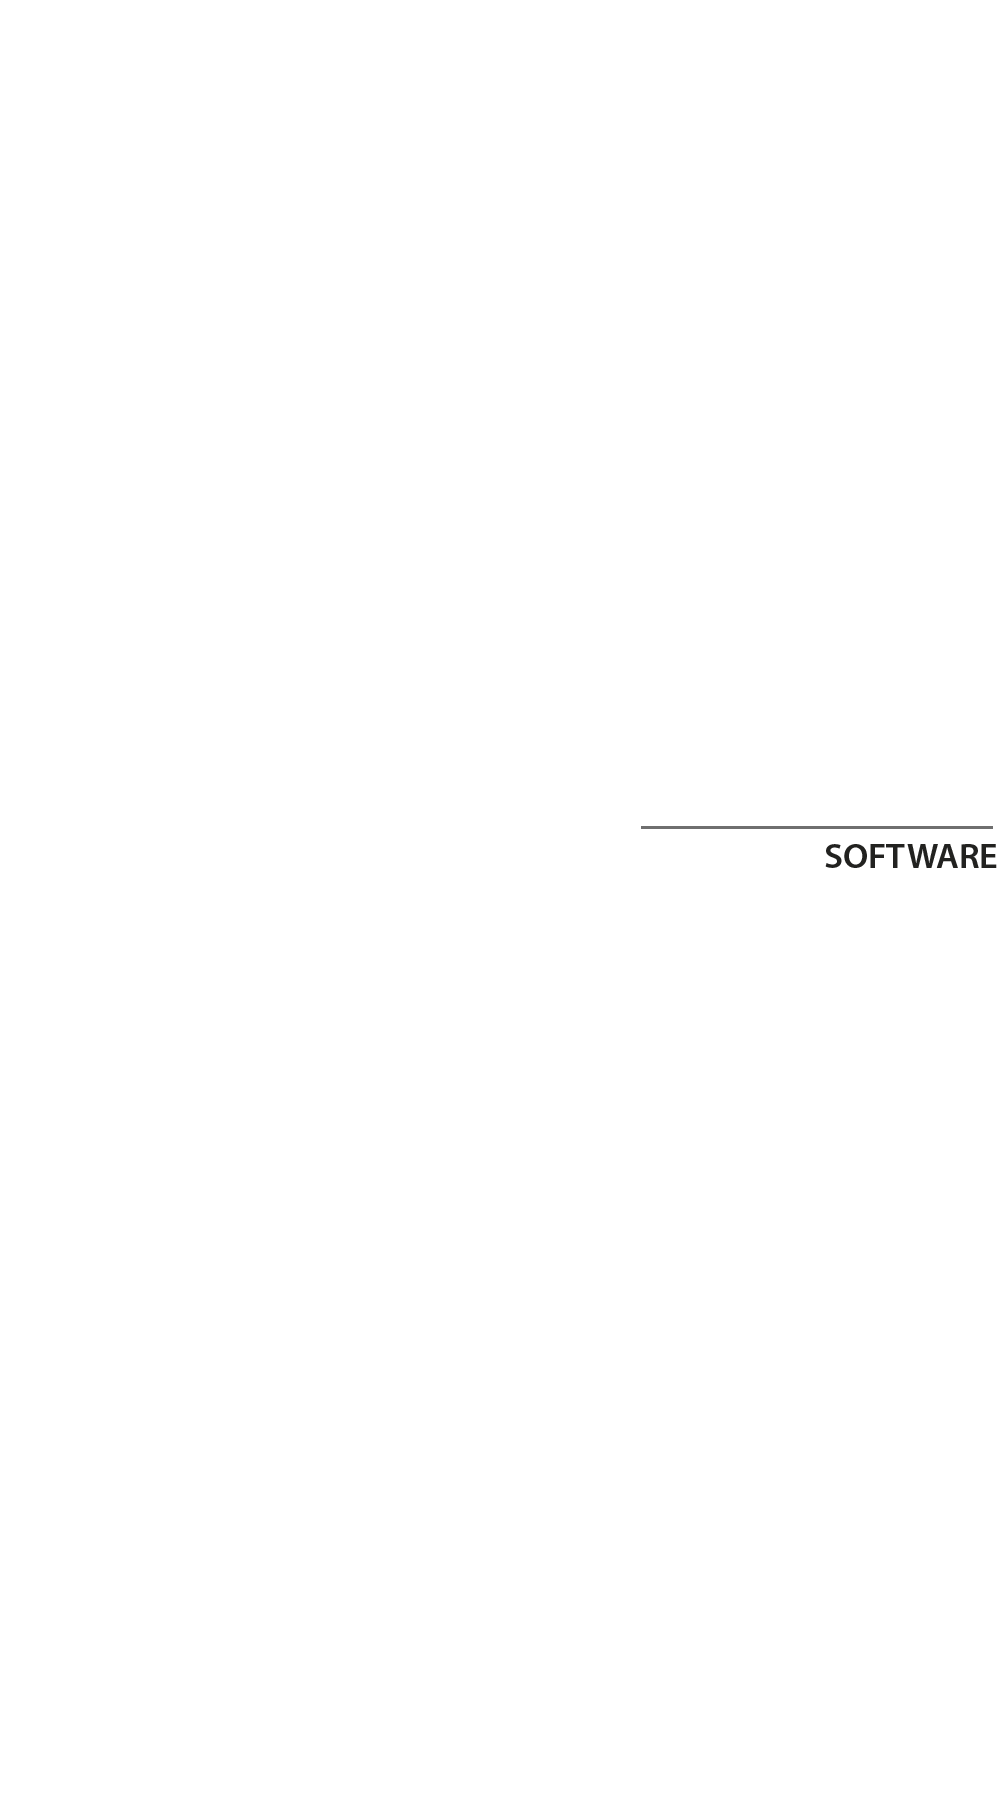 Tipografia software